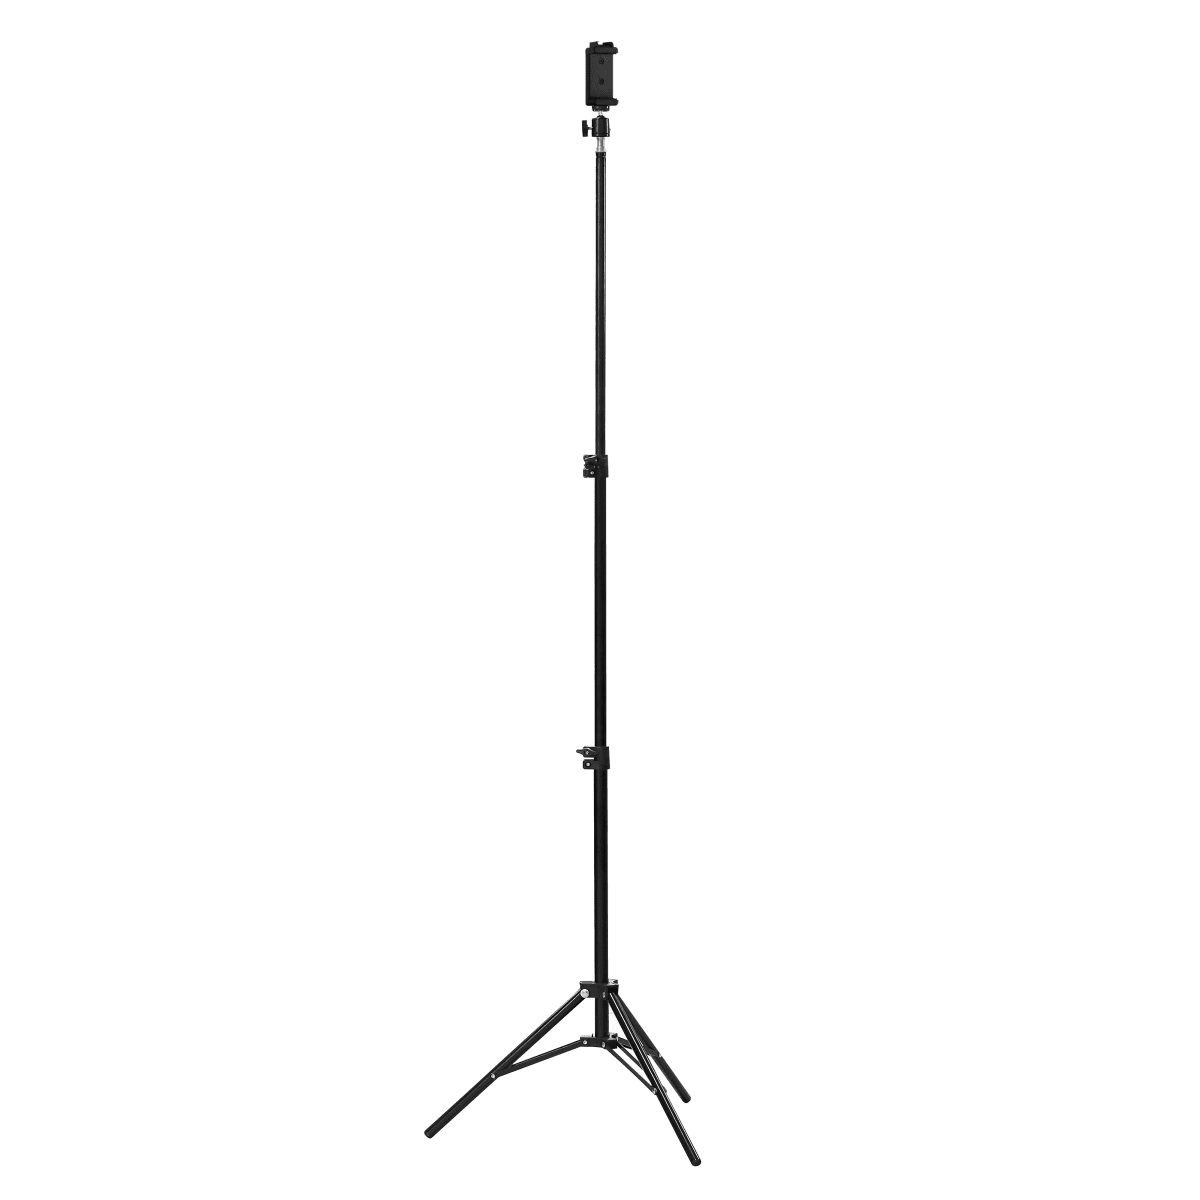 Telescopic tripod with smartphone holder - INFLUENCE